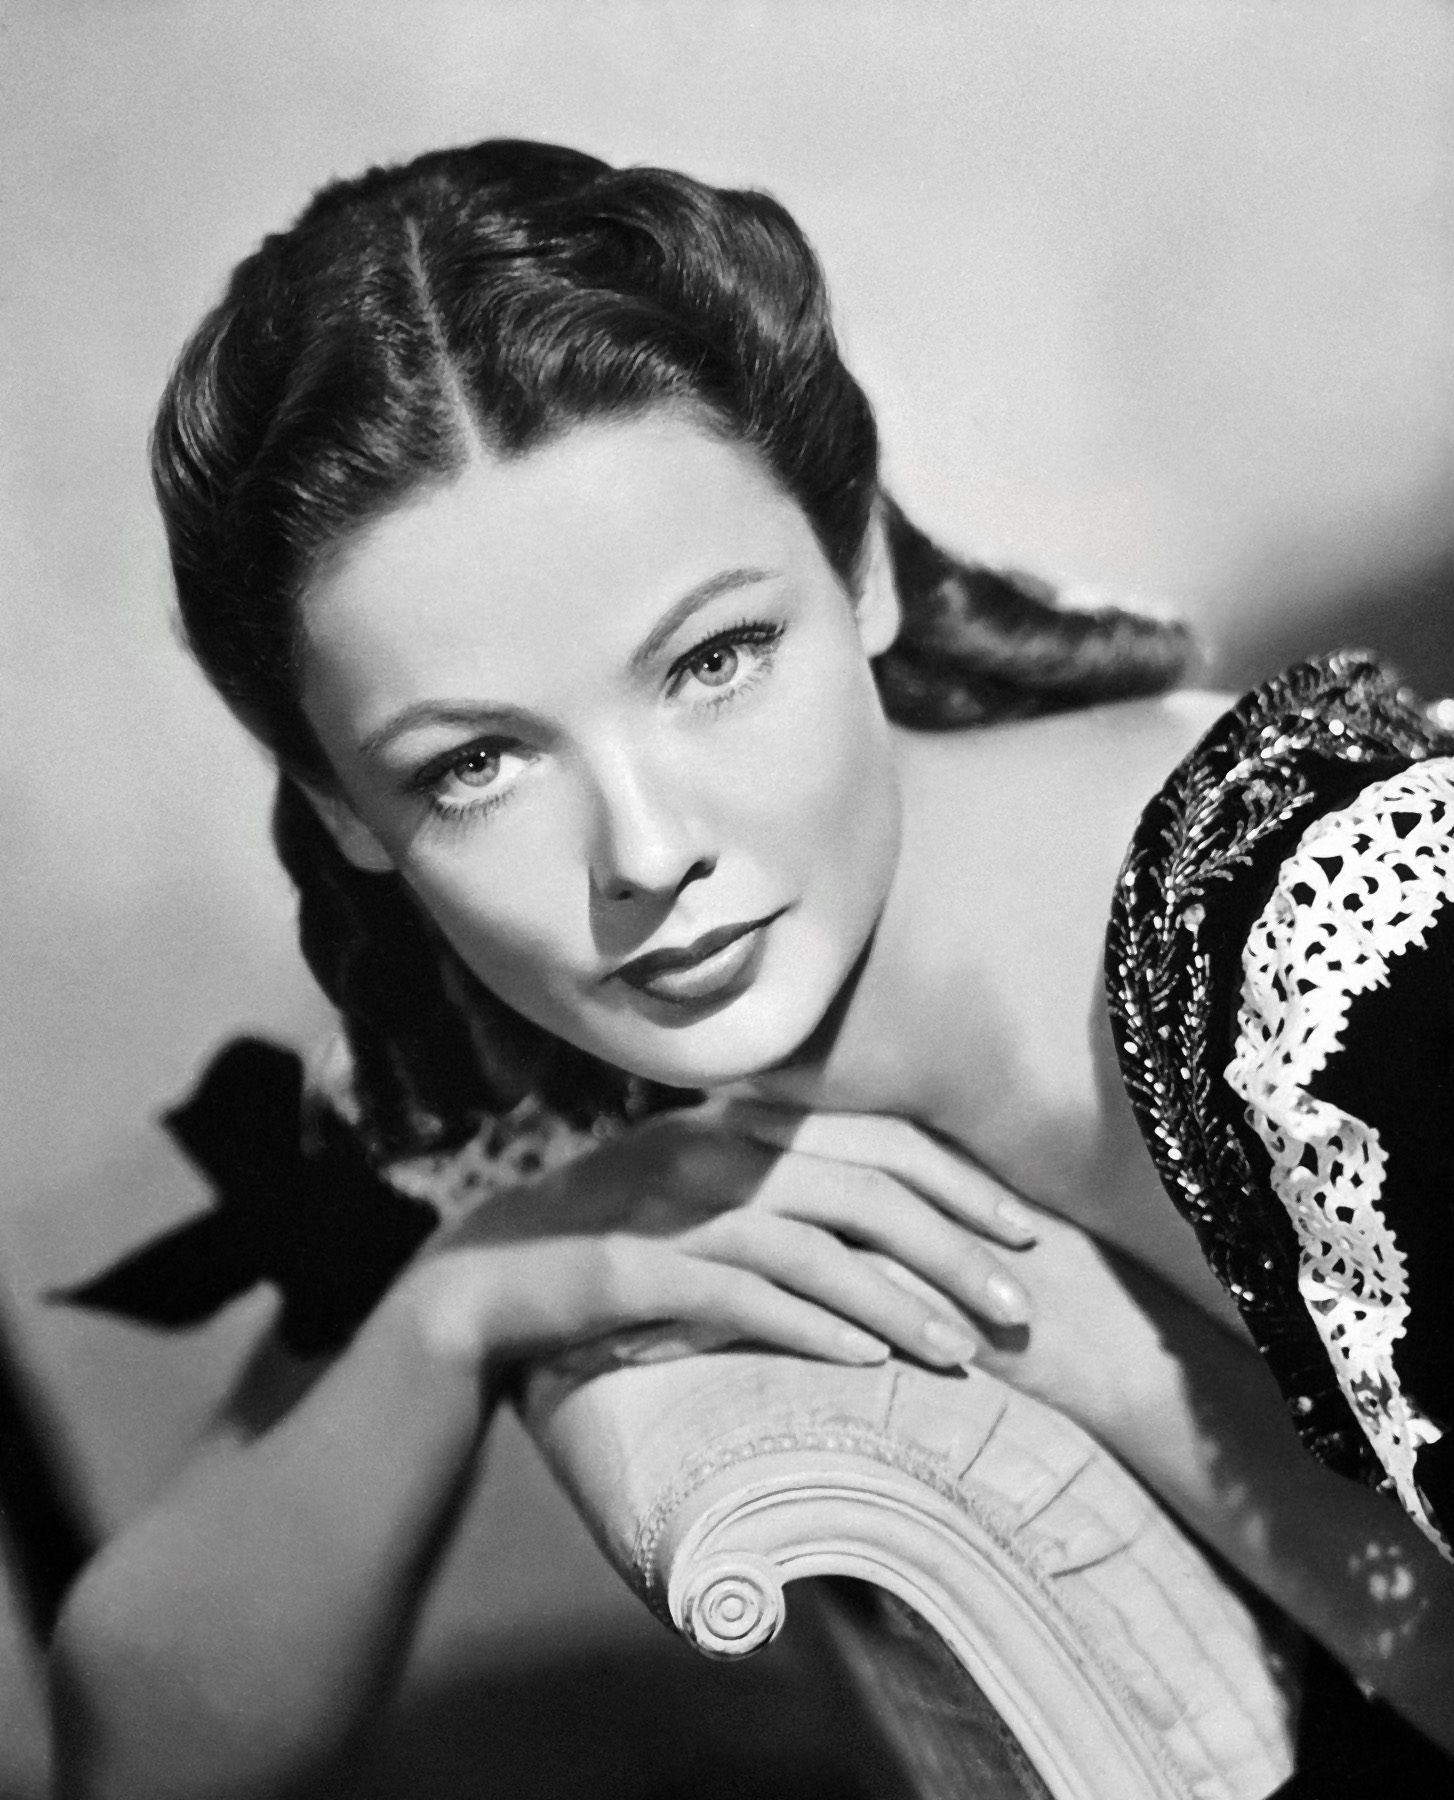 gene tierney gifgene tierney height, gene tierney child, gene tierney dana andrews, gene tierney daughter, gene tierney oleg cassini, gene tierney smile, gene tierney zodiac, gene tierney gif, gene tierney height weight, gene tierney instagram, gene tierney biography book, gene tierney old, gene tierney eye color, gene tierney tribute